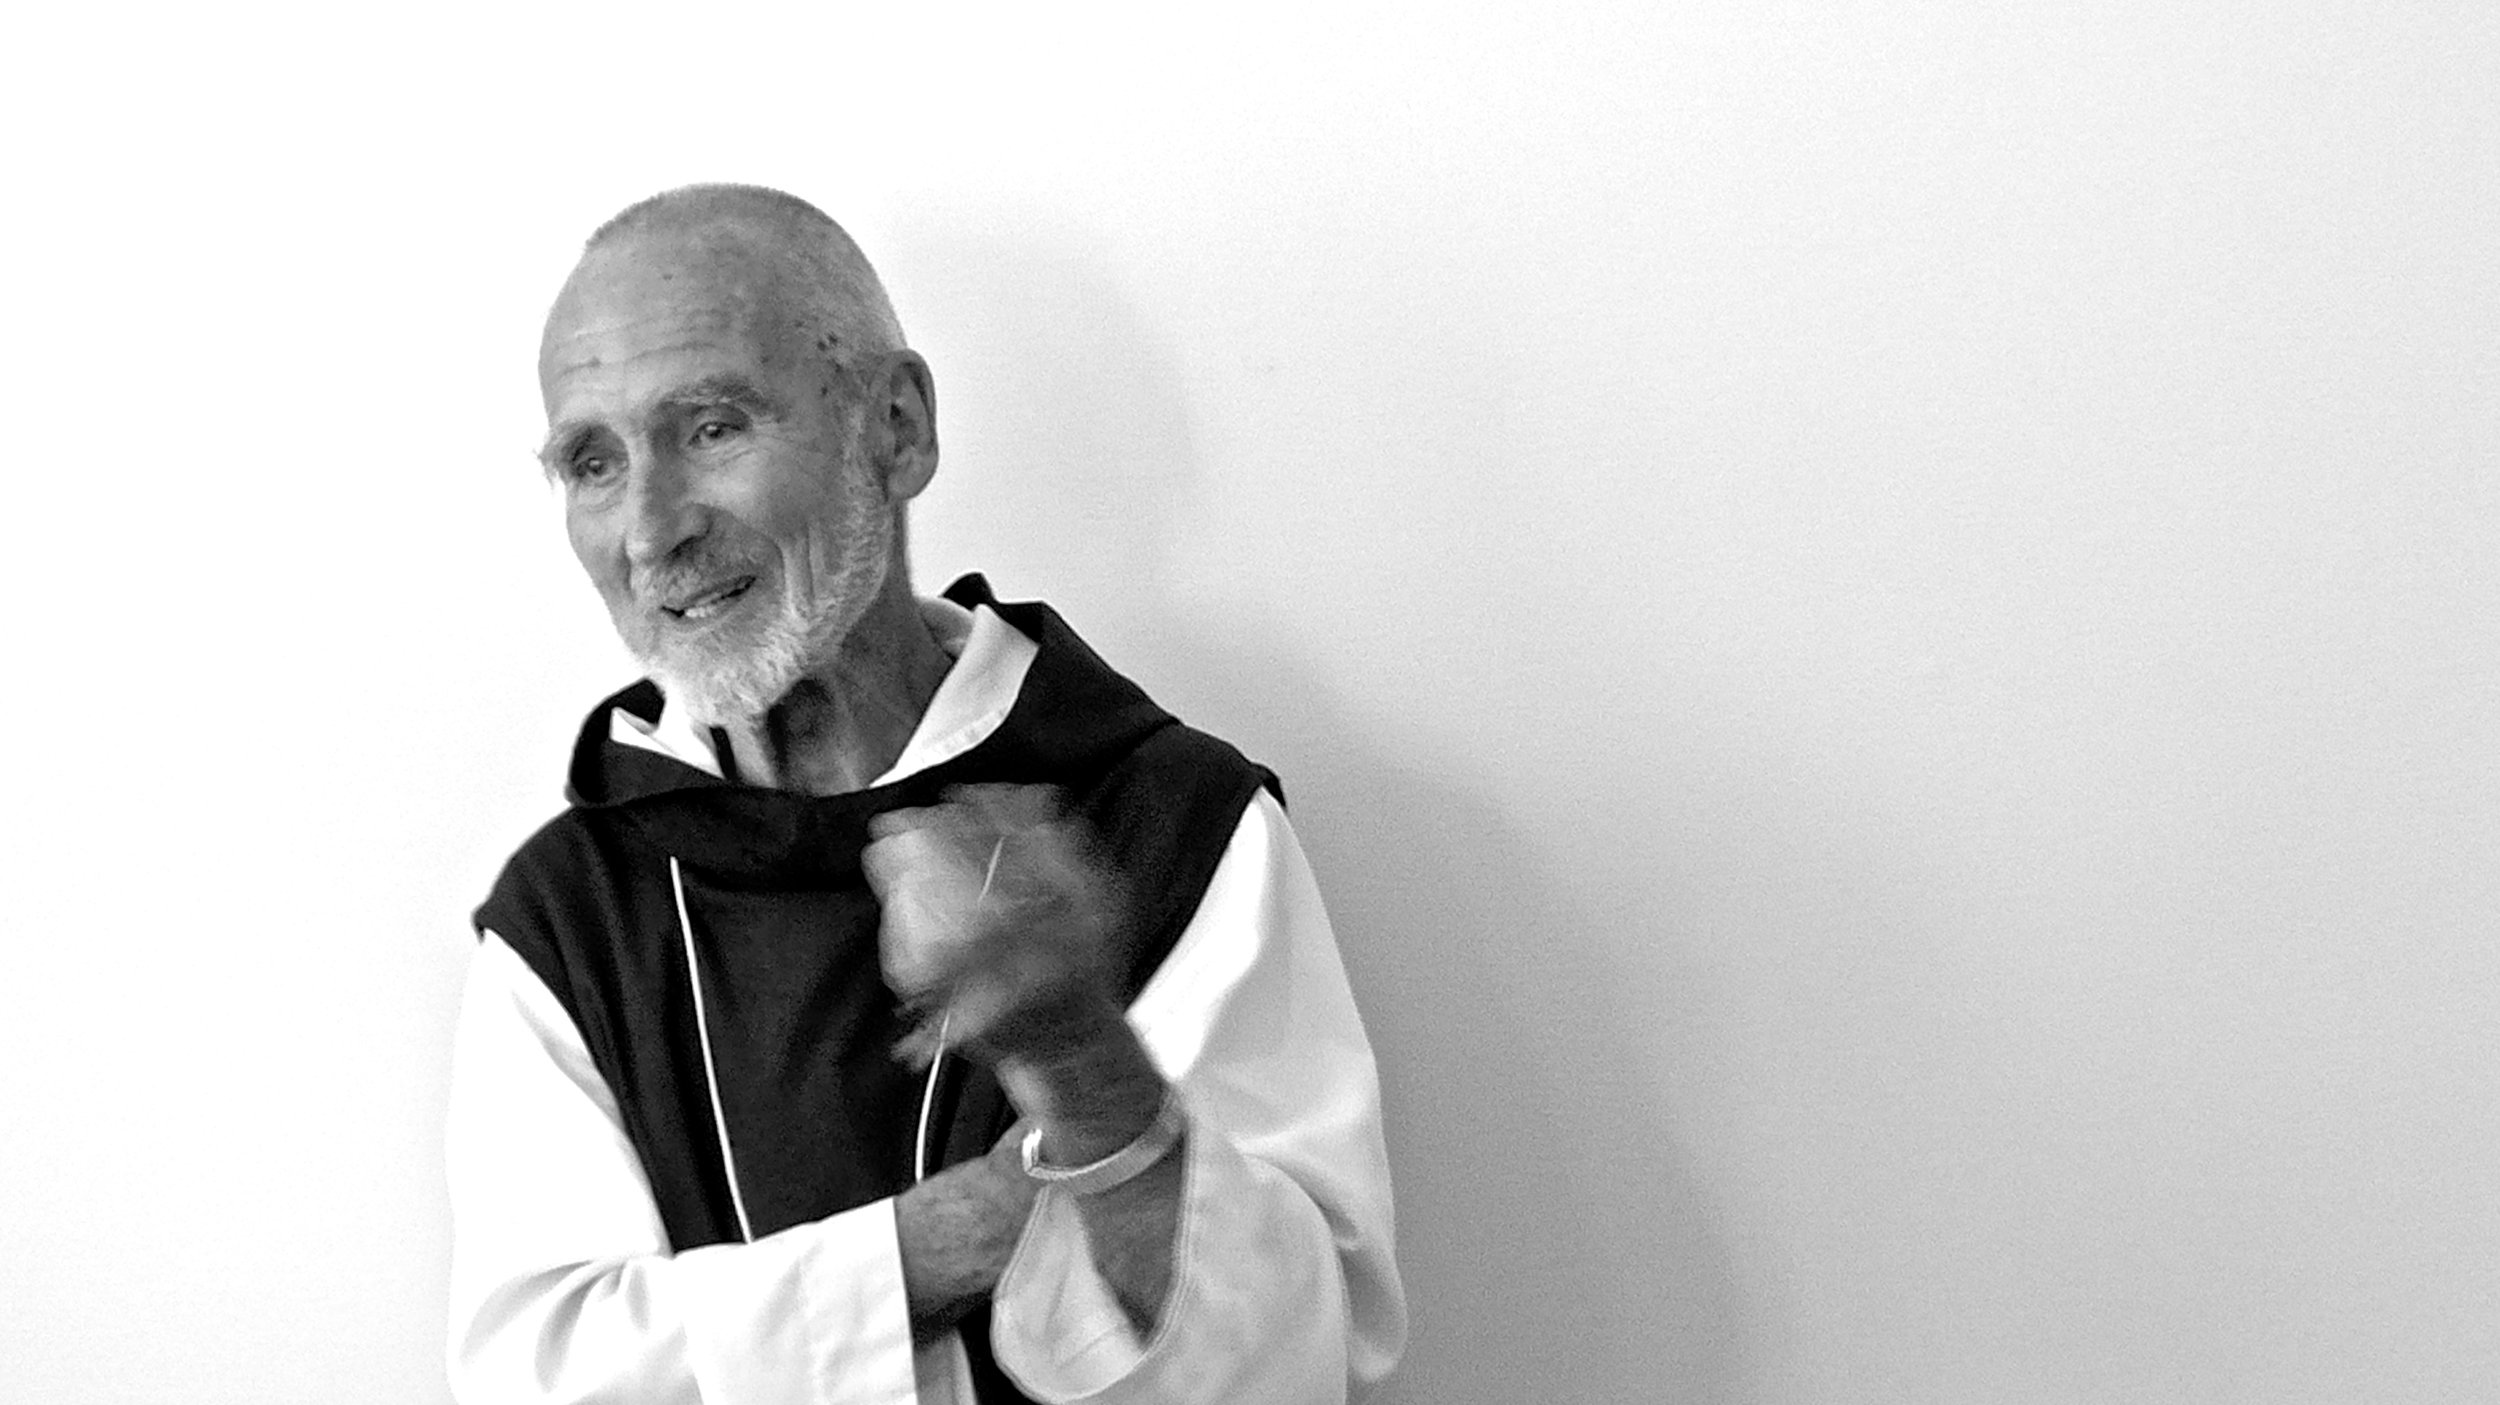 David_Vogel_BR. DAVID STEINDL-RAST.jpg